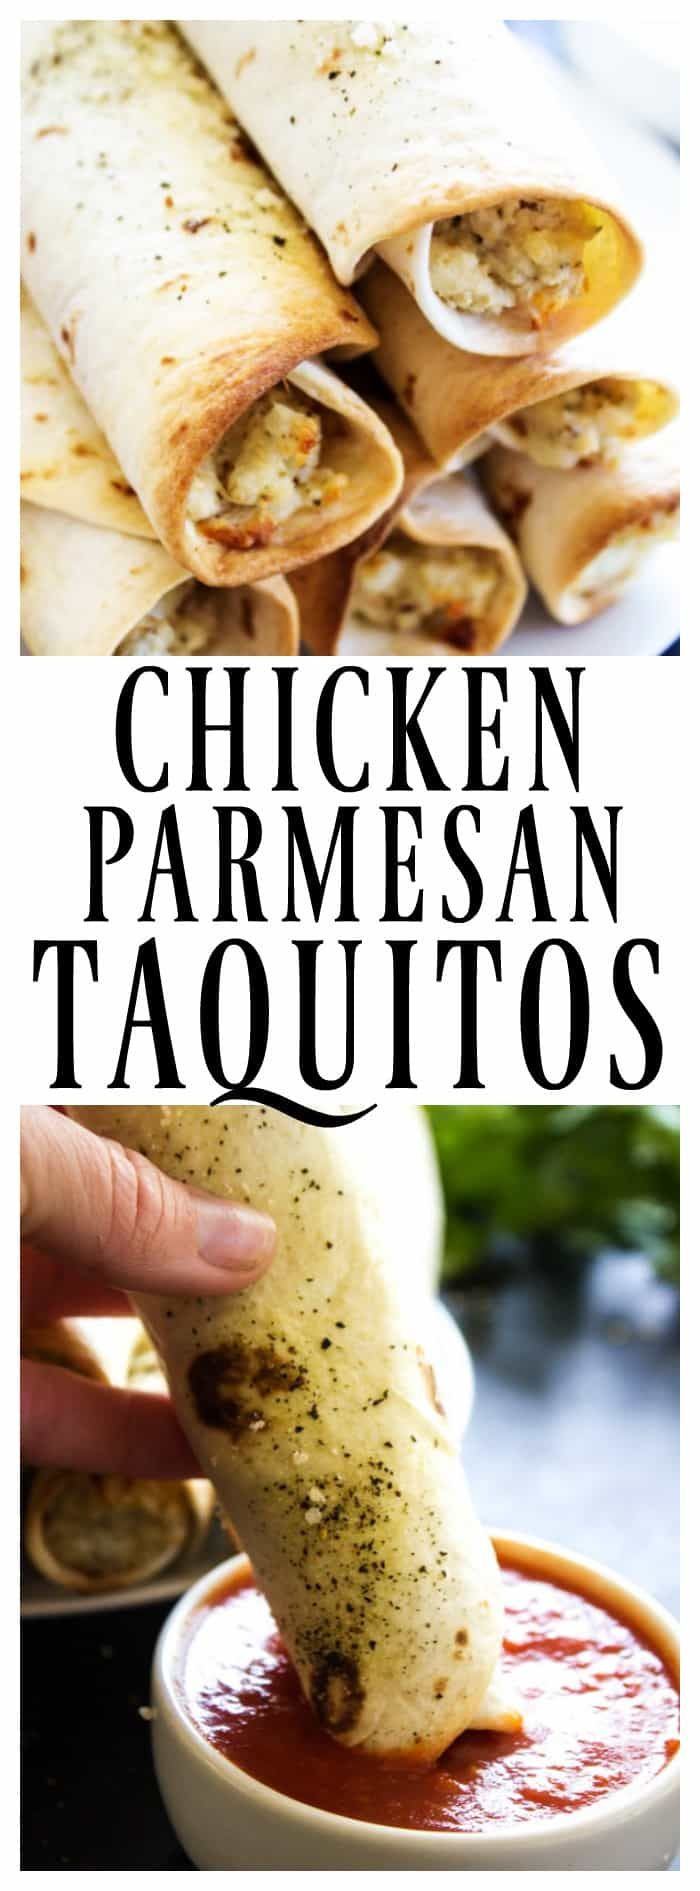 CHICKEN PARMESAN TAQUITOS - A Dash of Sanity #30minutemeal #taquitos #chicken #chickenparmesan #ovenbaked